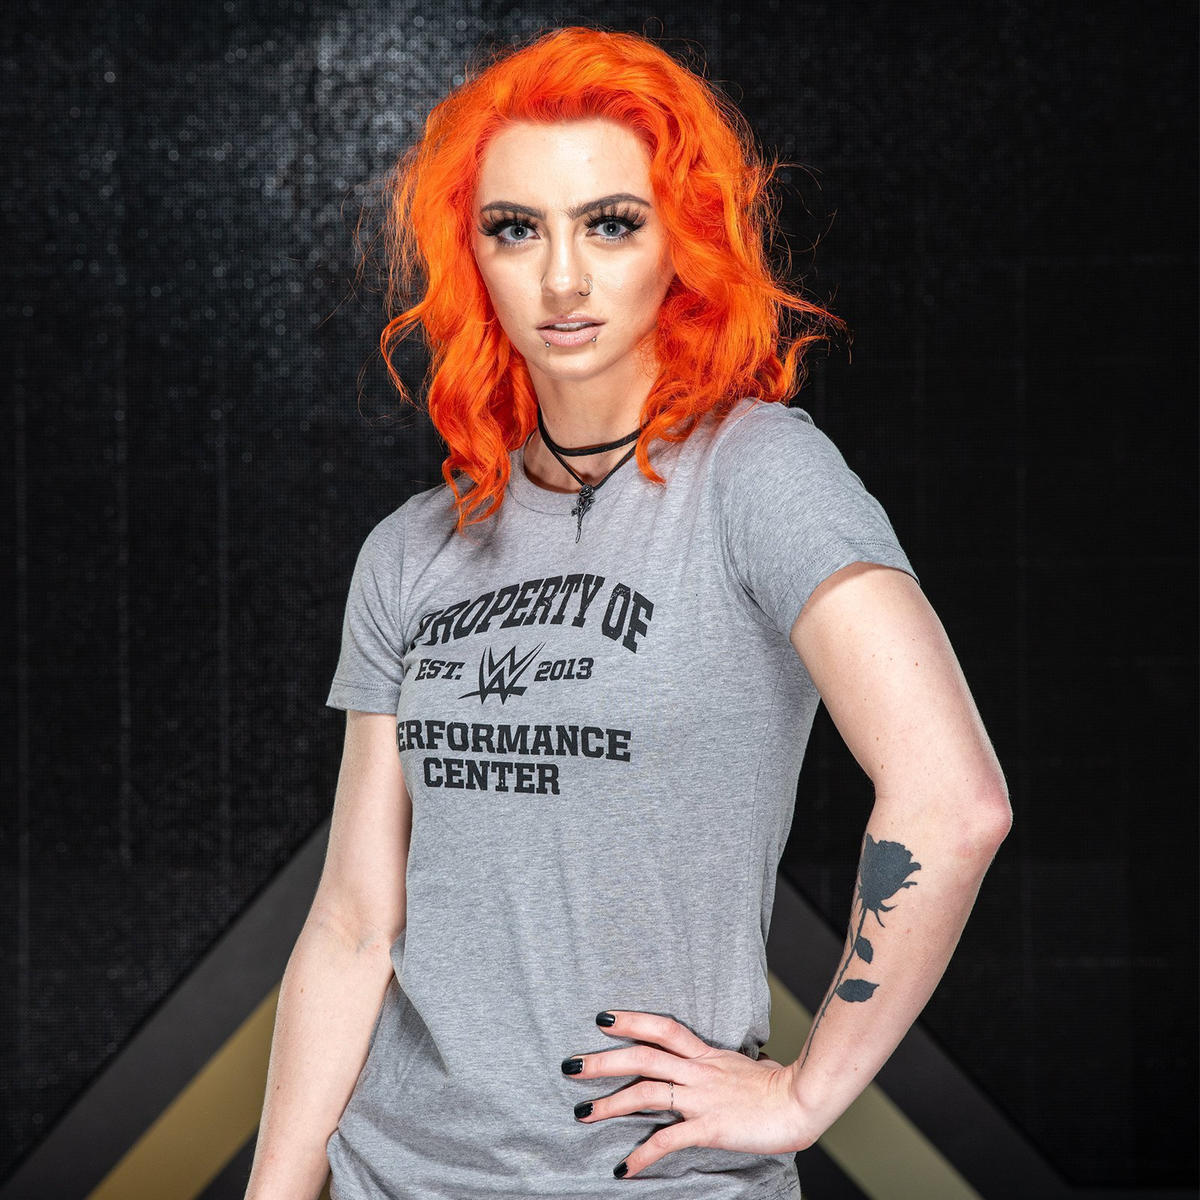 Priscilla Kelly, now going by Gigi Dolin, competed in the 2018 Mae Young Classic and returned to WWE for the first-ever Women's Dusty Rhodes Tag Team Classic in NXT.